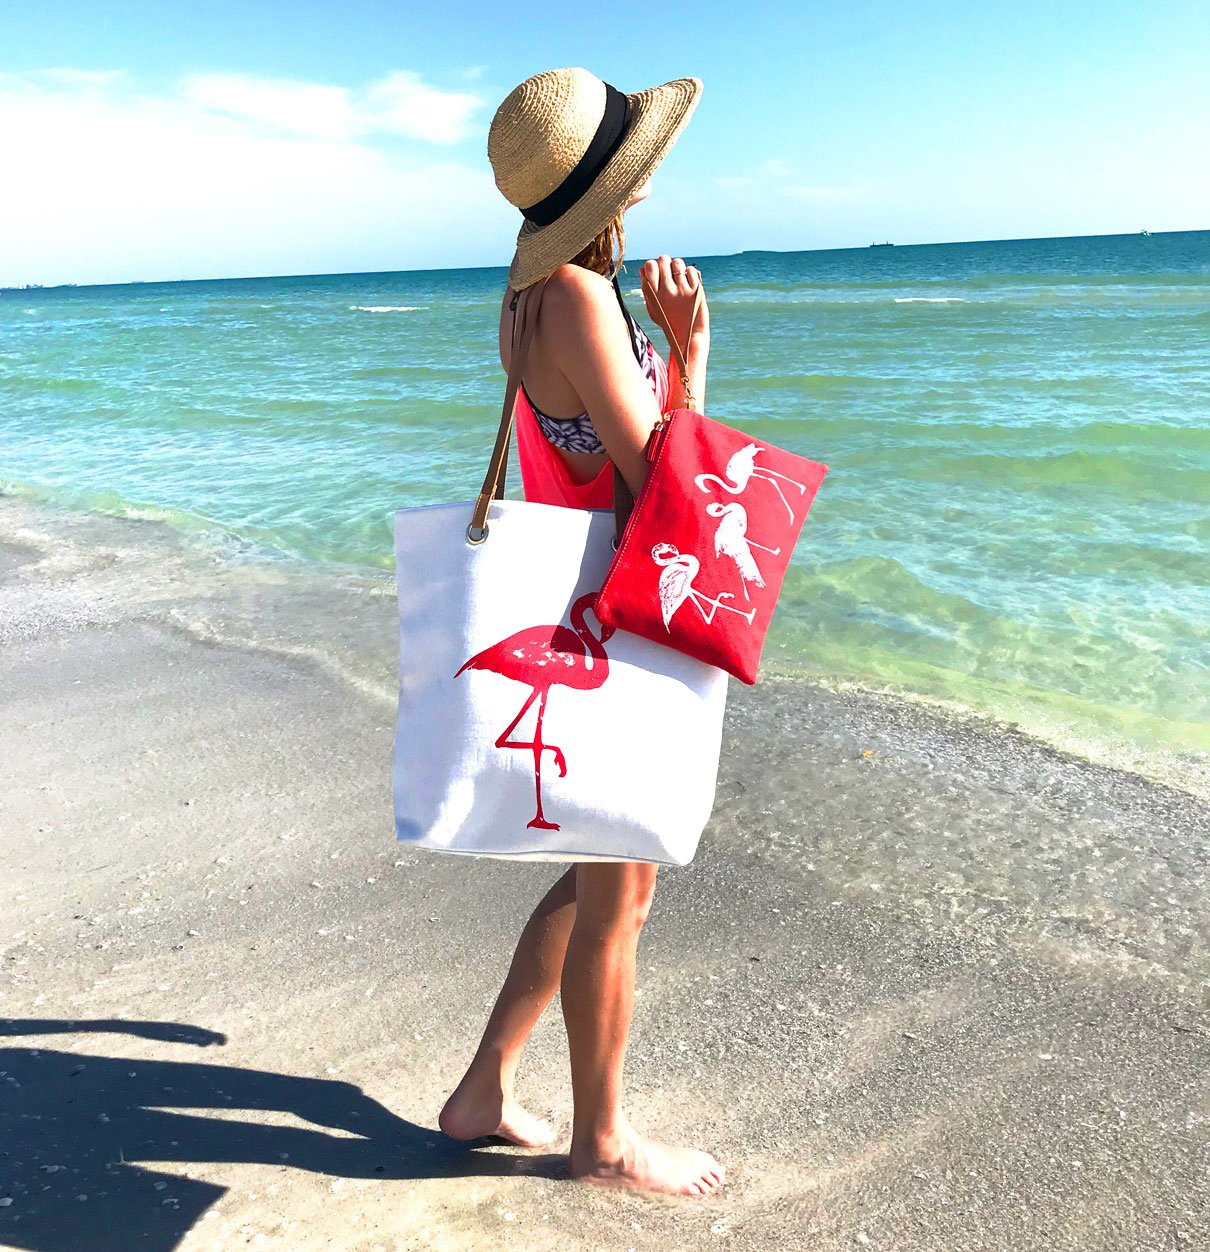 XL Large Cotton Canvas Flamingo Tote & Accessory Bag for Beach, Travel & Every Day by Kodi Lifestyle Collection (Image #2)